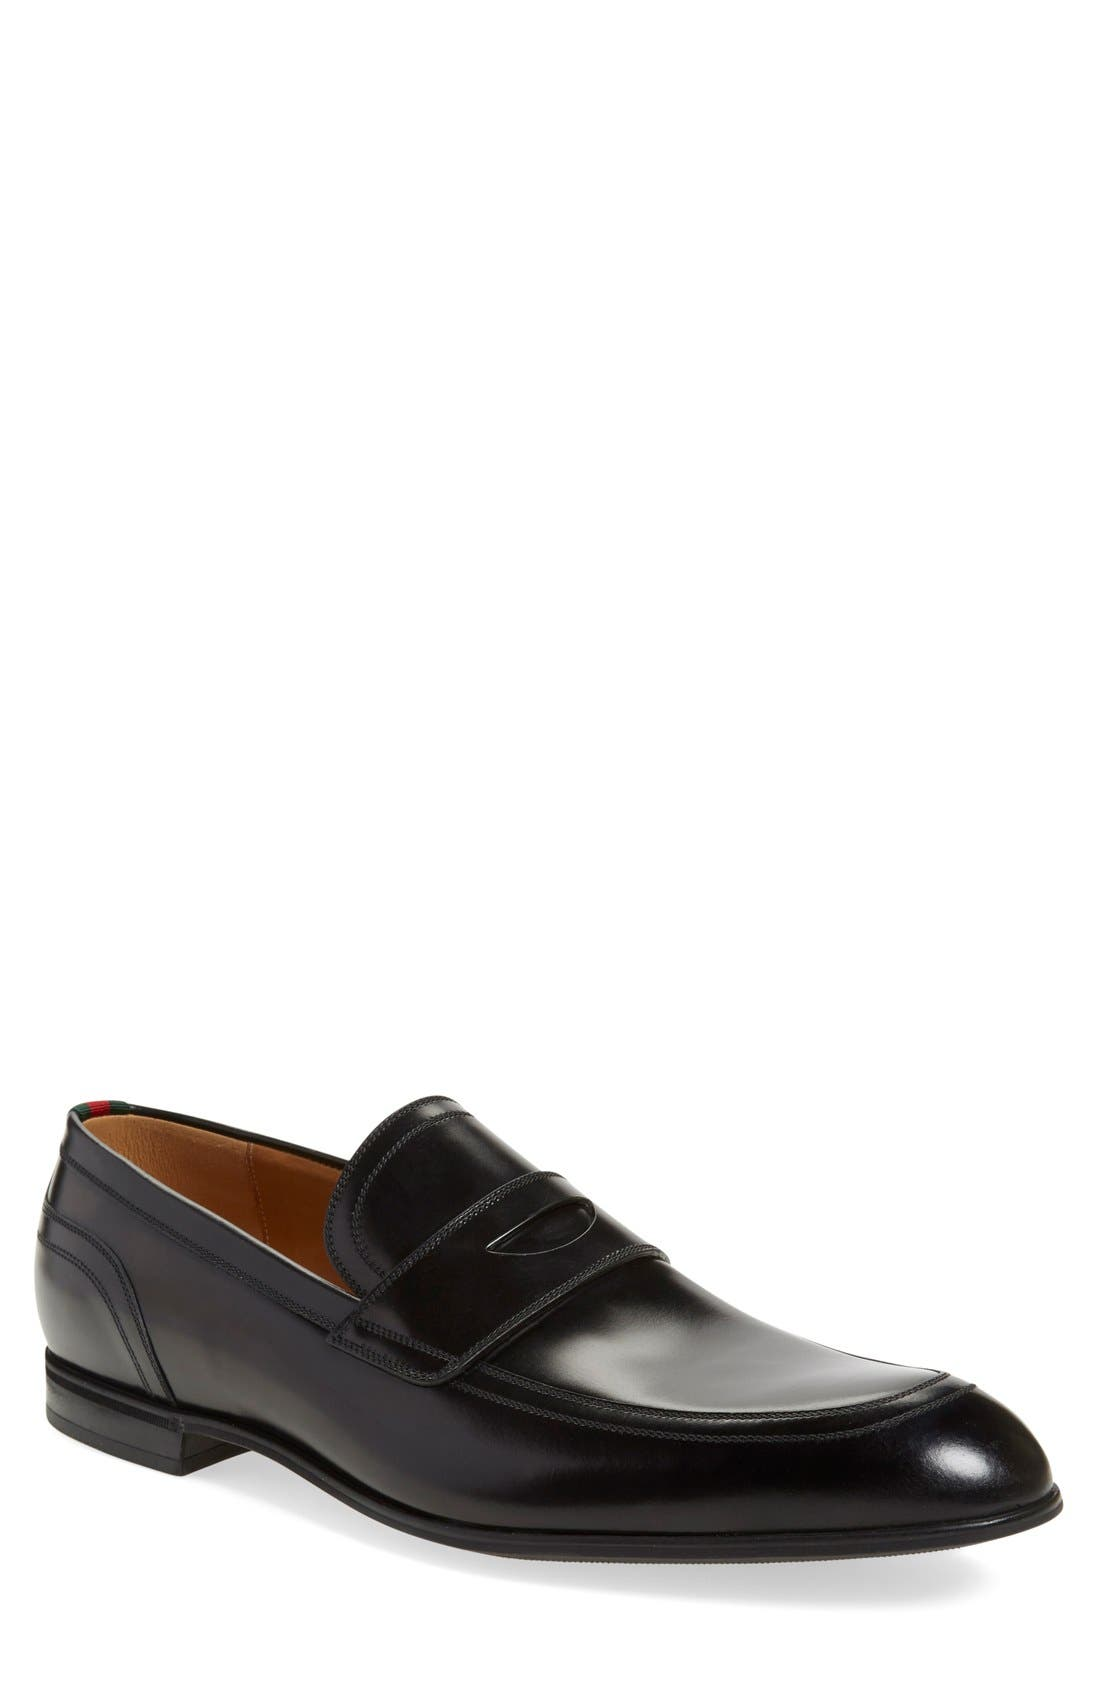 Alternate Image 1 Selected - Gucci Ravello Penny Loafer (Men)